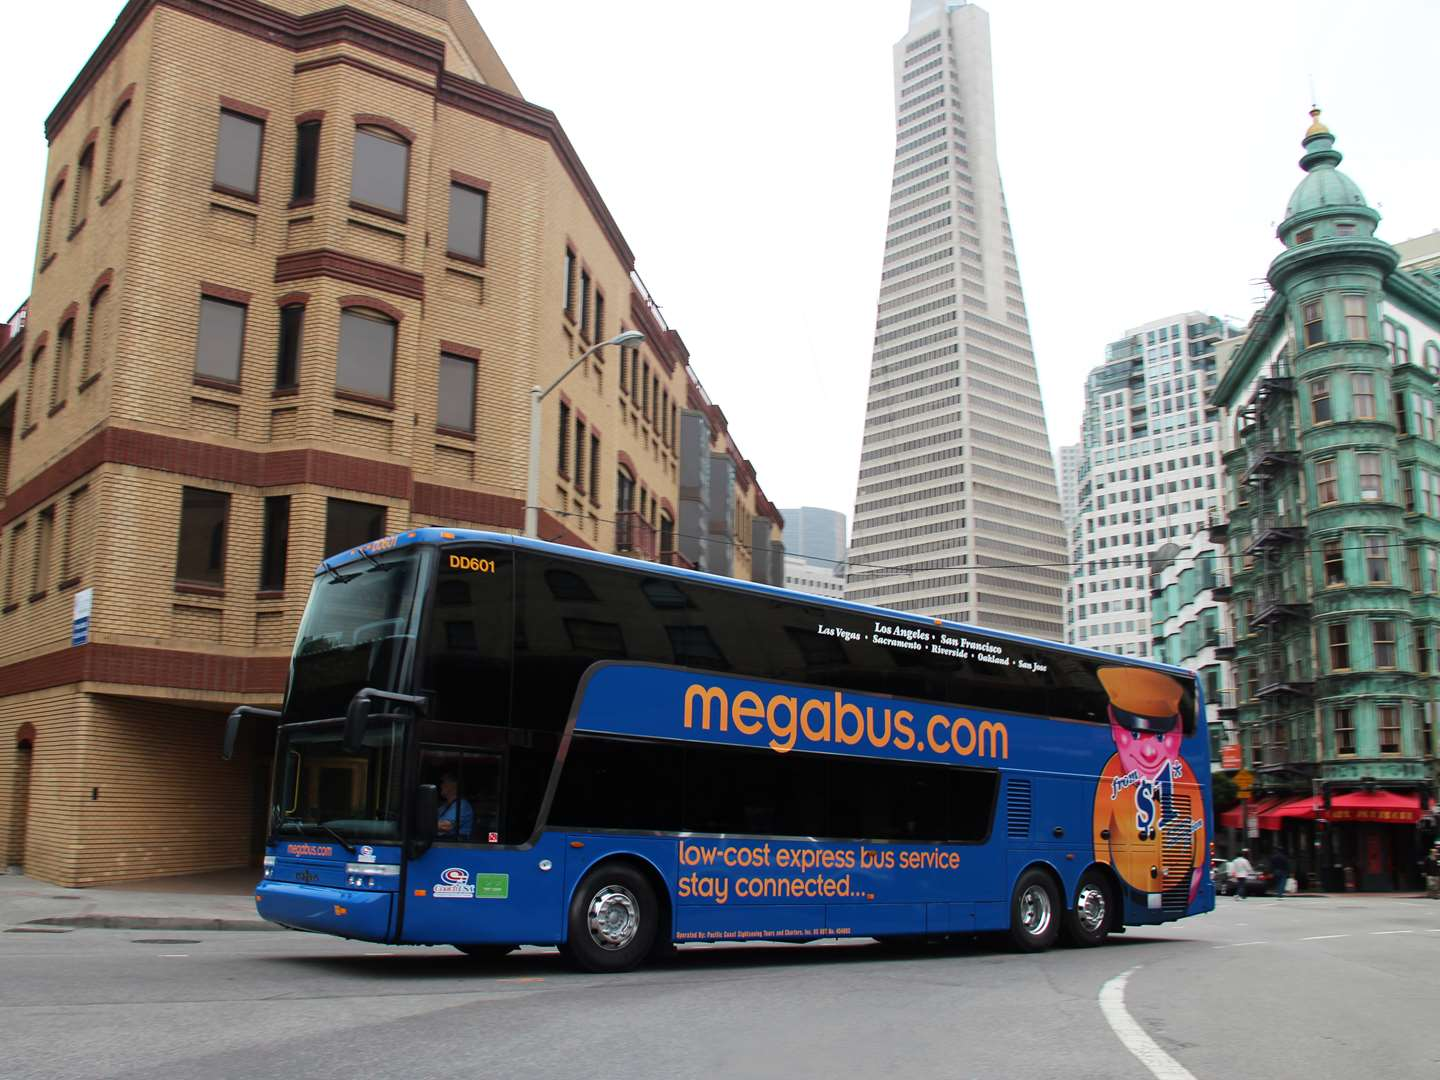 megabus in front of the Transamerica Pyramid in San Francisco, CA